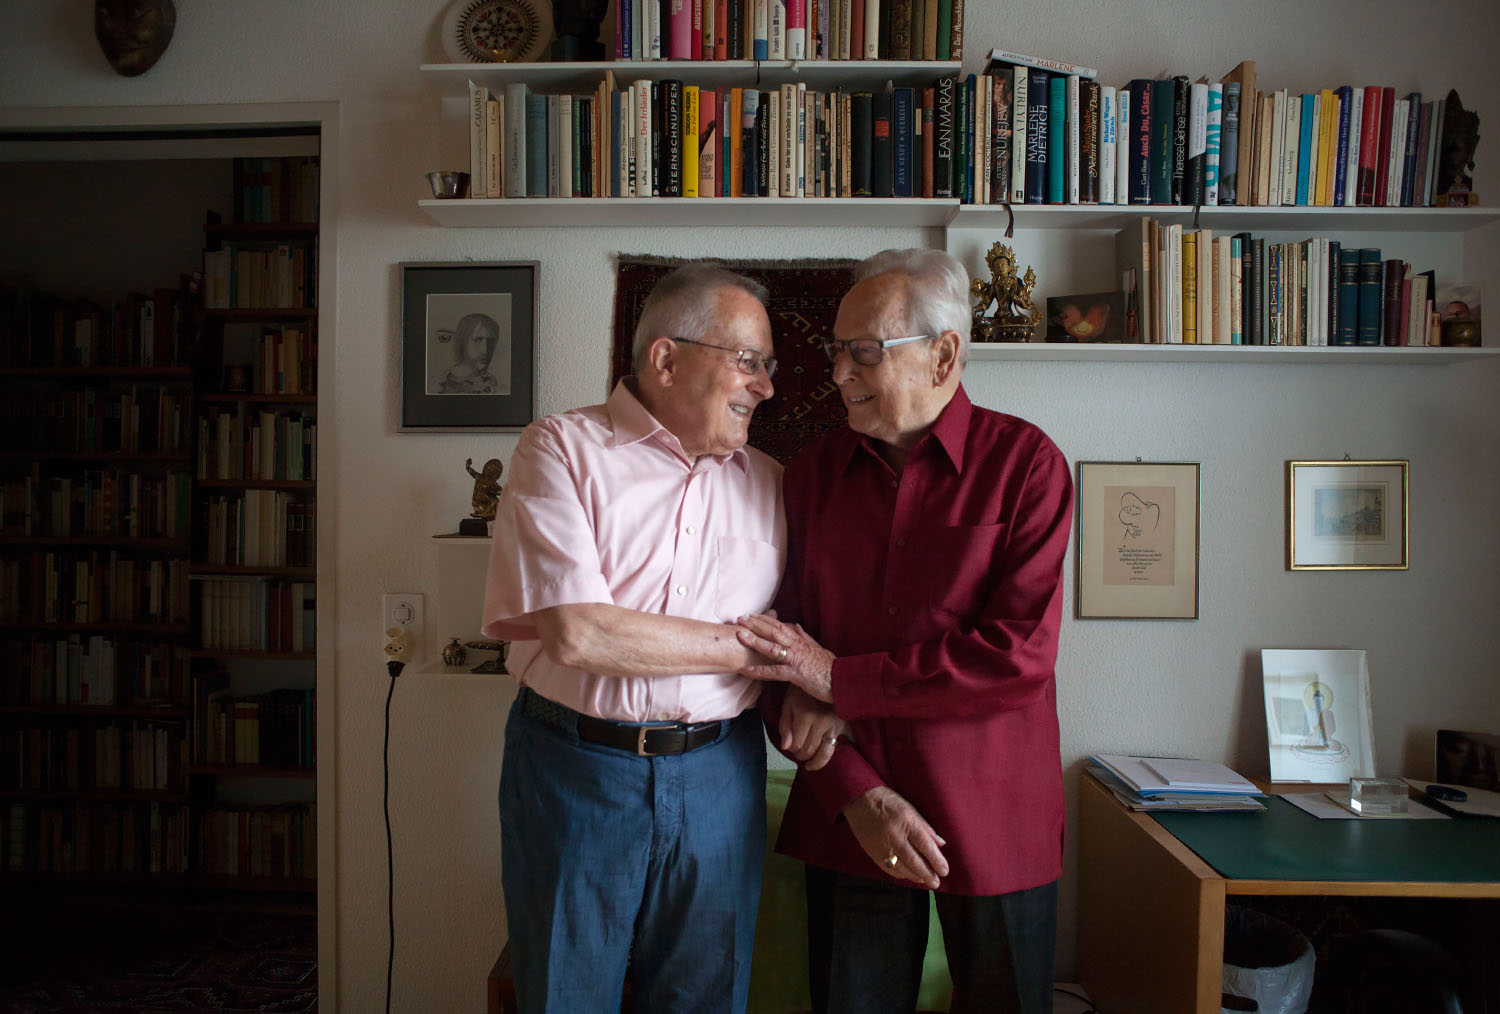 Ernst (left) and Robi (right), photo by Kevin Truong